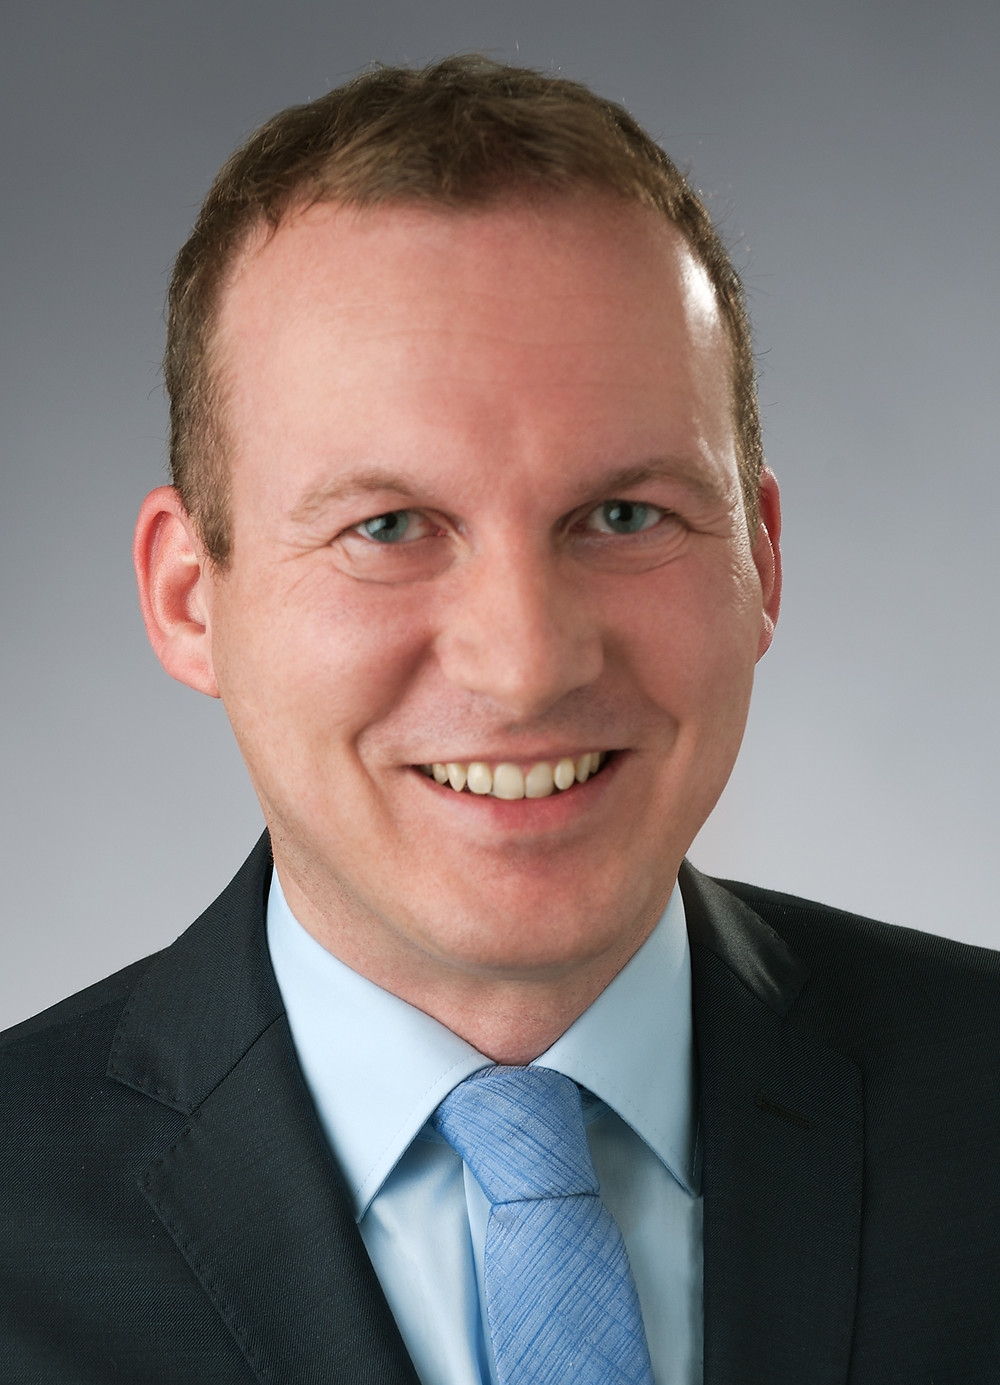 Sascha Odenthal, the new Head of MSSP Business at Infinigate Deutschland